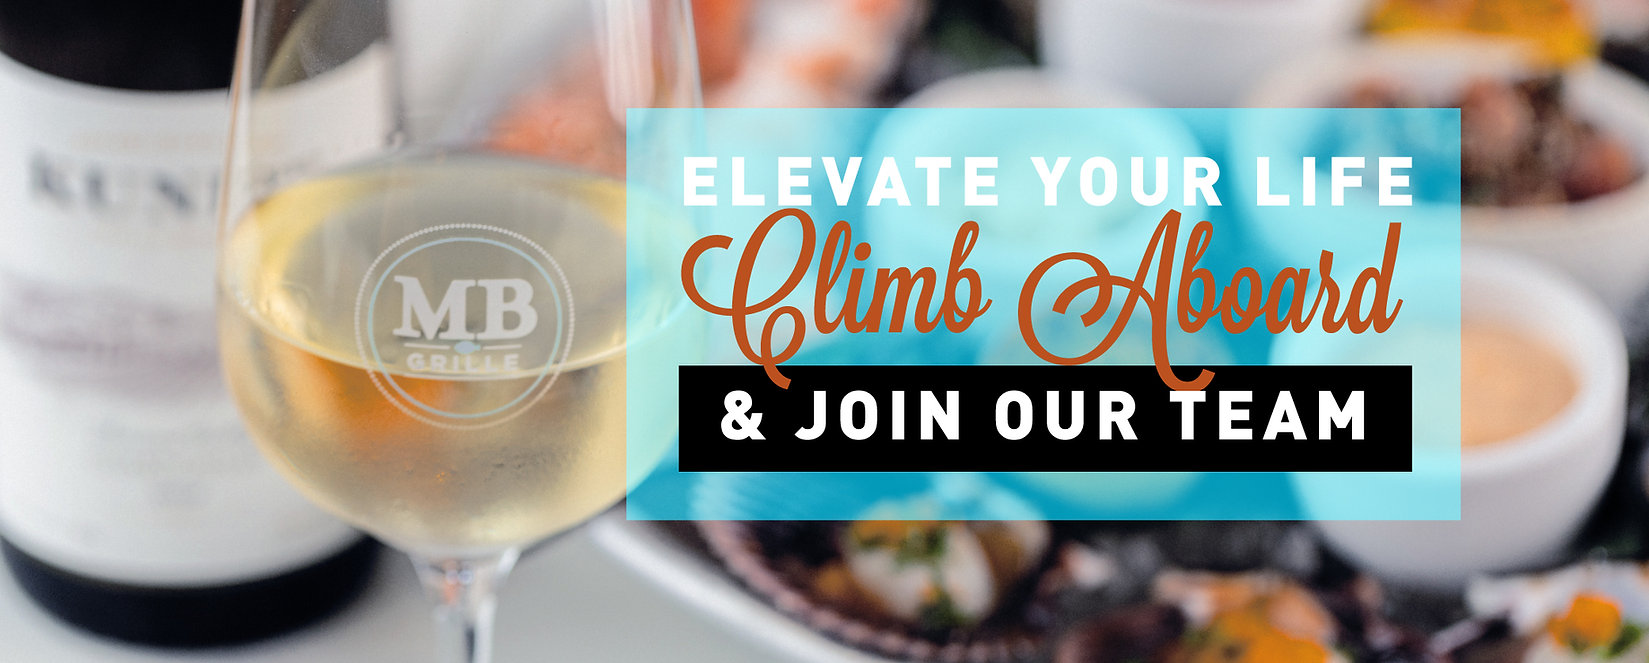 Elevate Your Life Come Aboard & Join Our Team